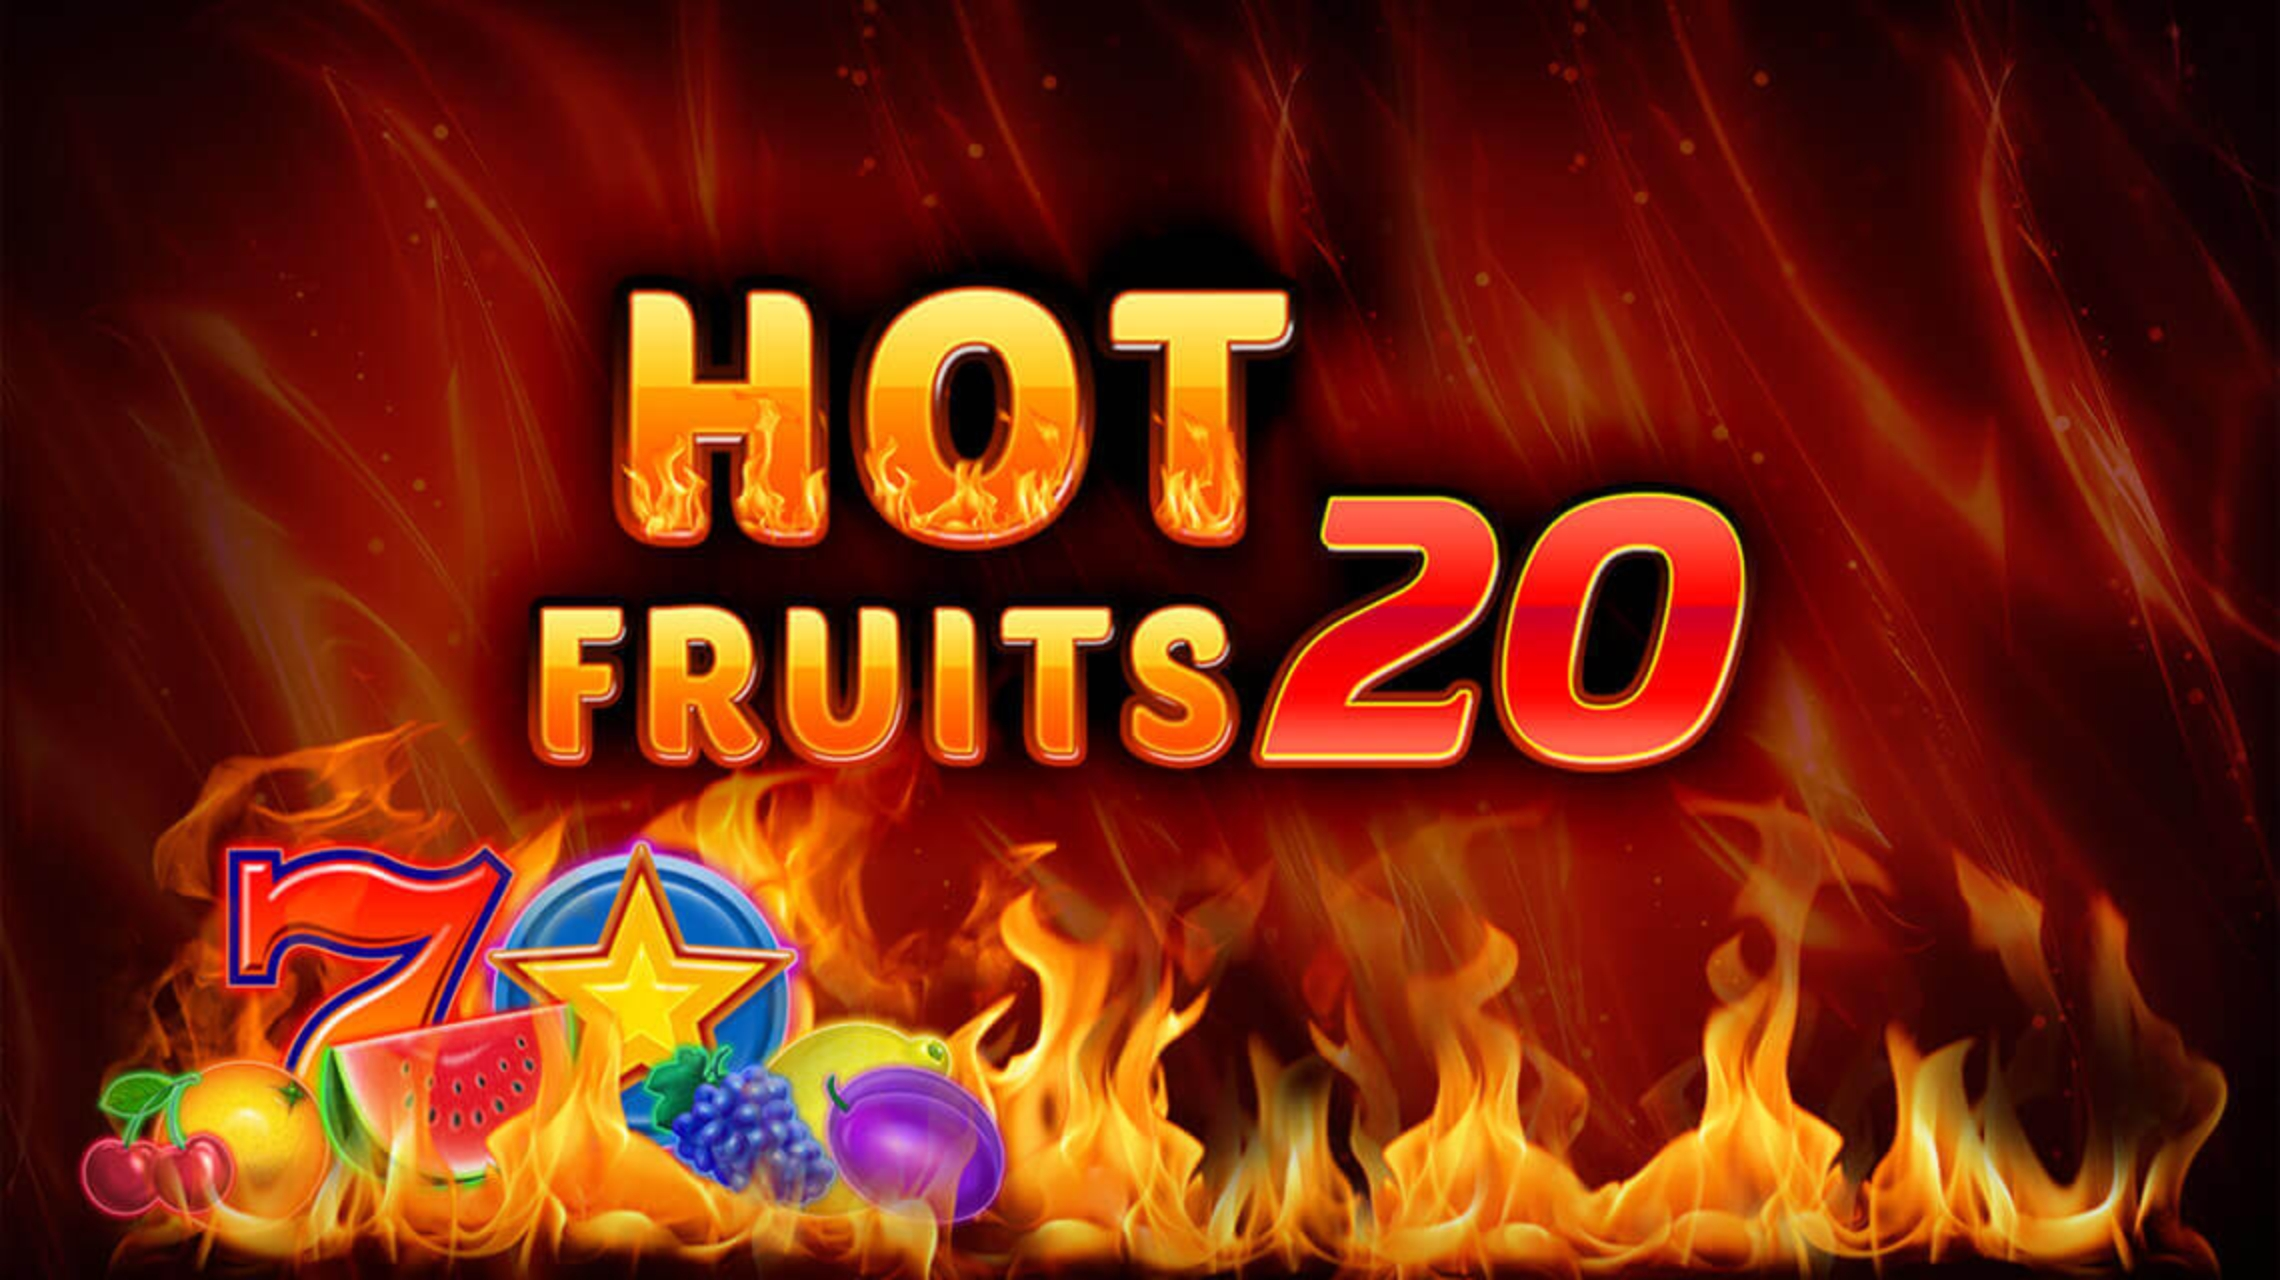 The Hottest Fruits 20 Online Slot Demo Game by Amatic Industries